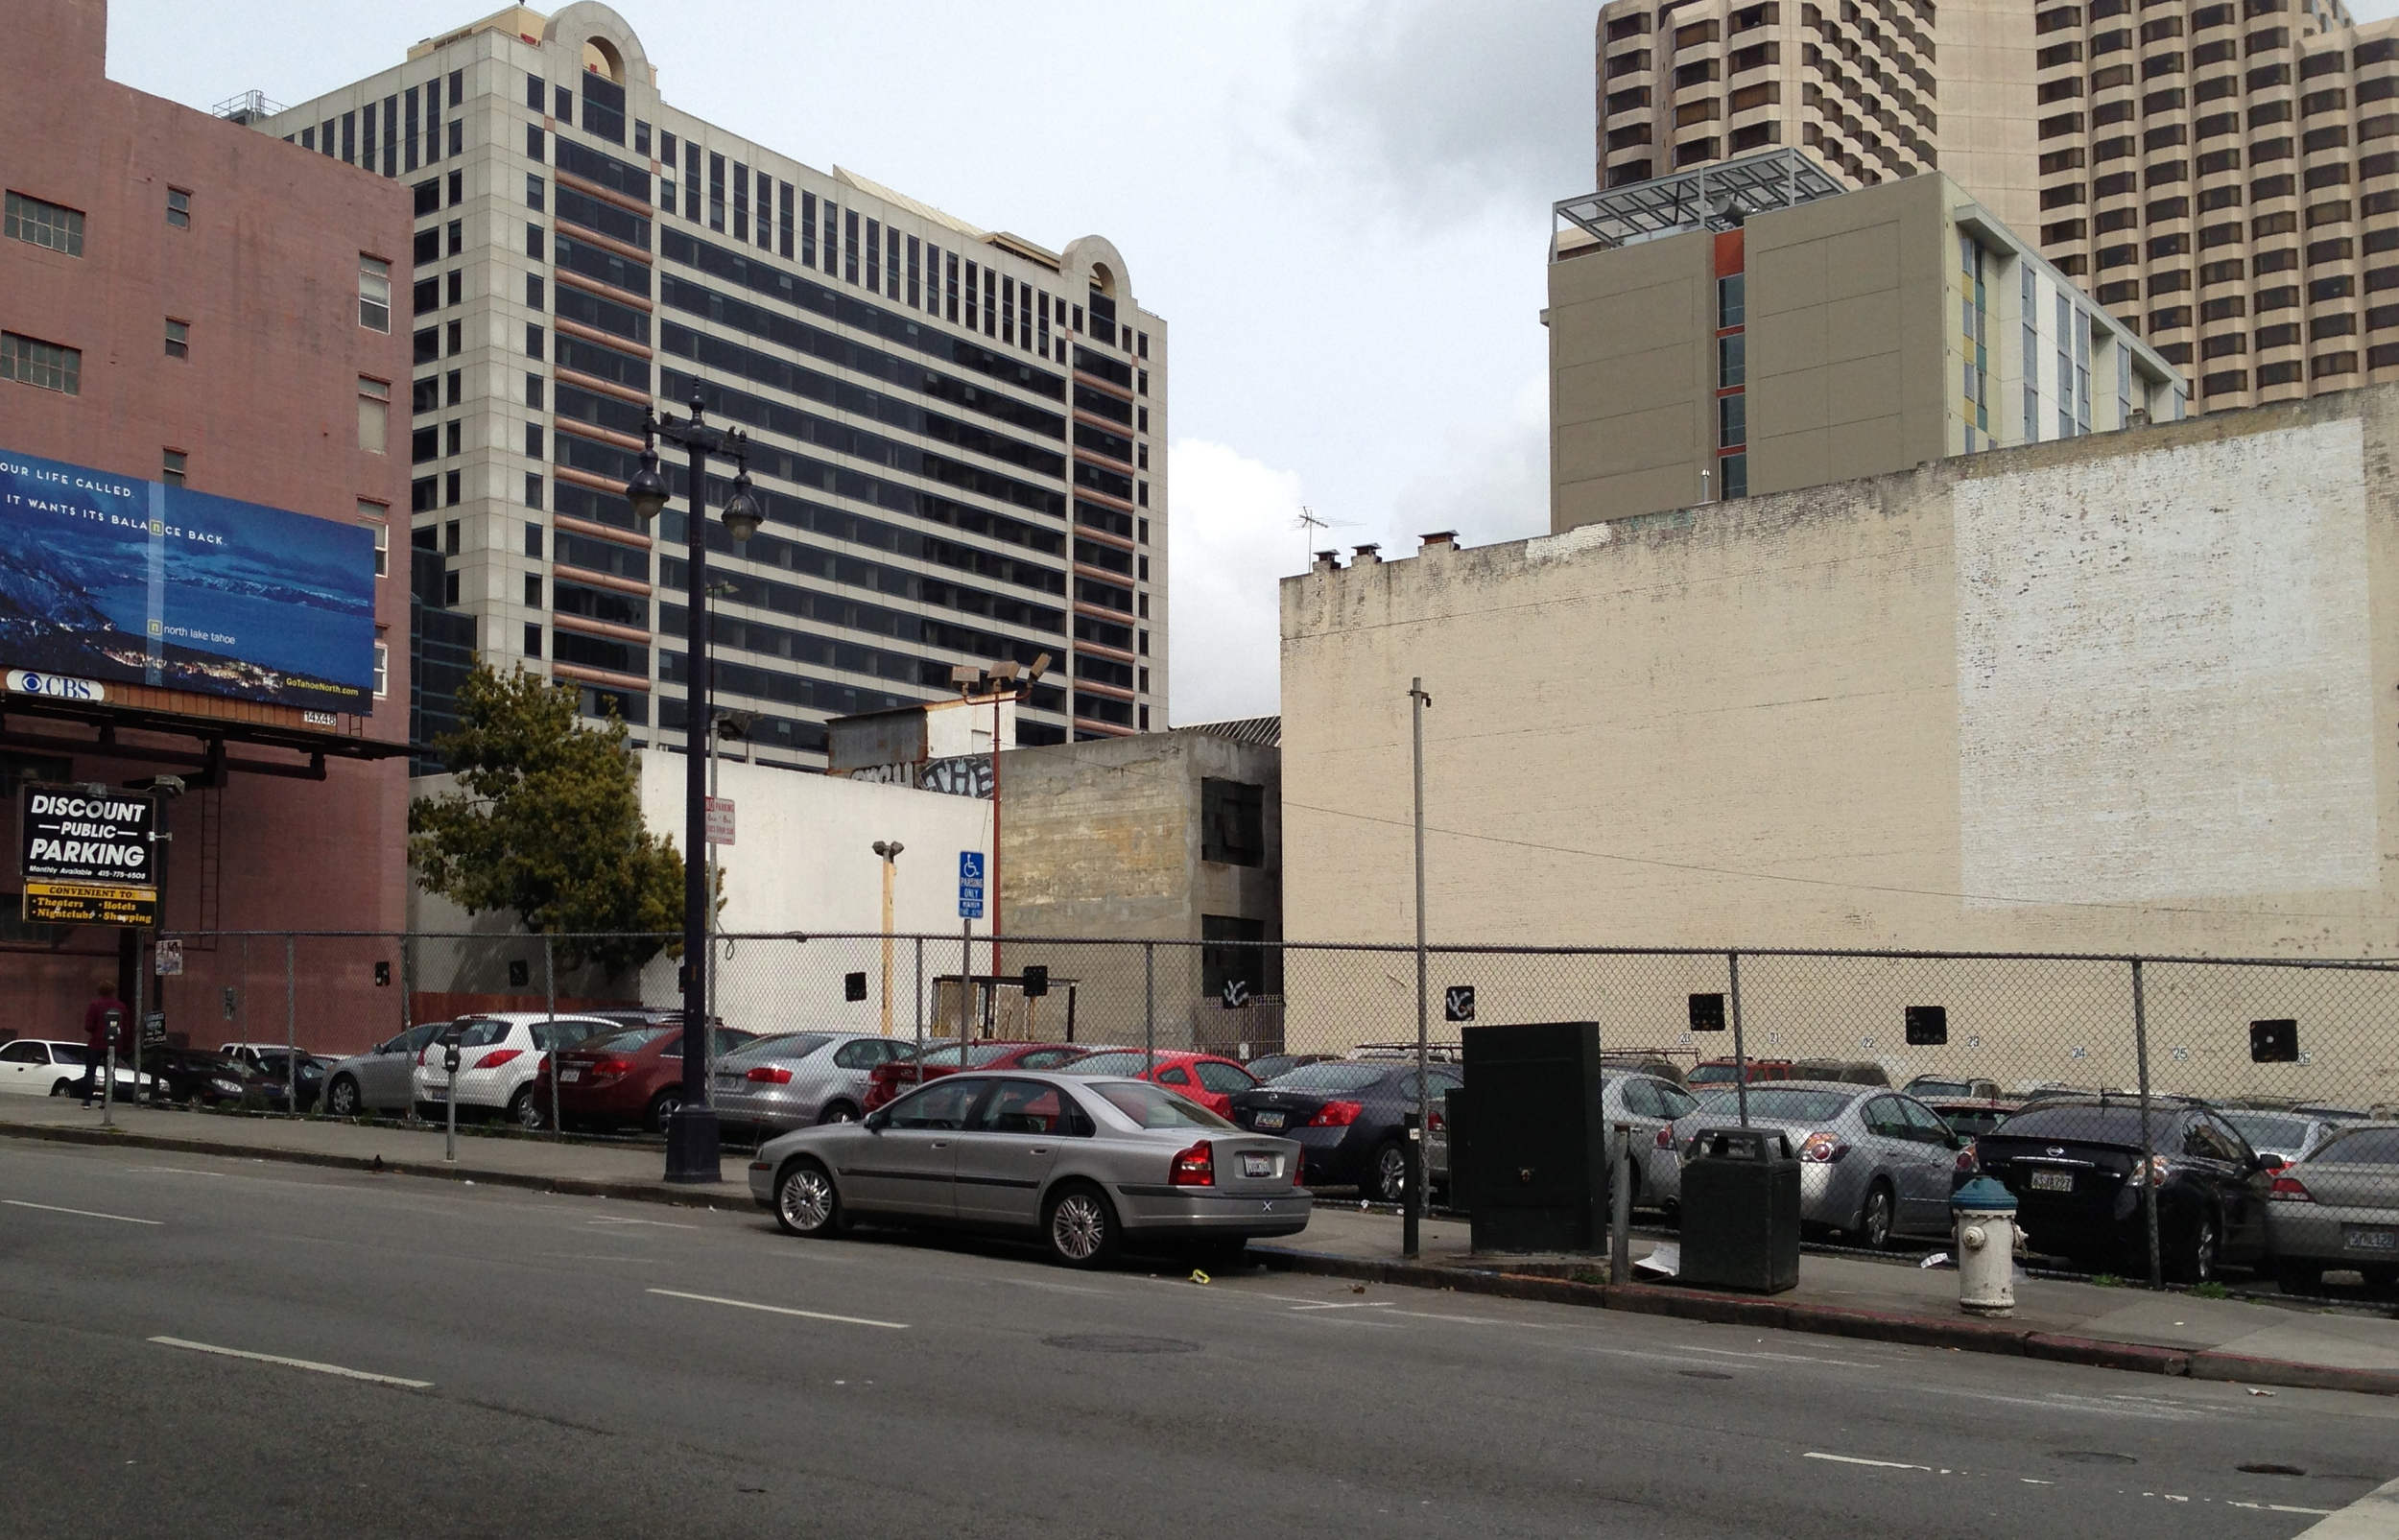 The site of the 2013 Architecture at Zero competition in the Tenderloin. Photo: Loren Wearsch.